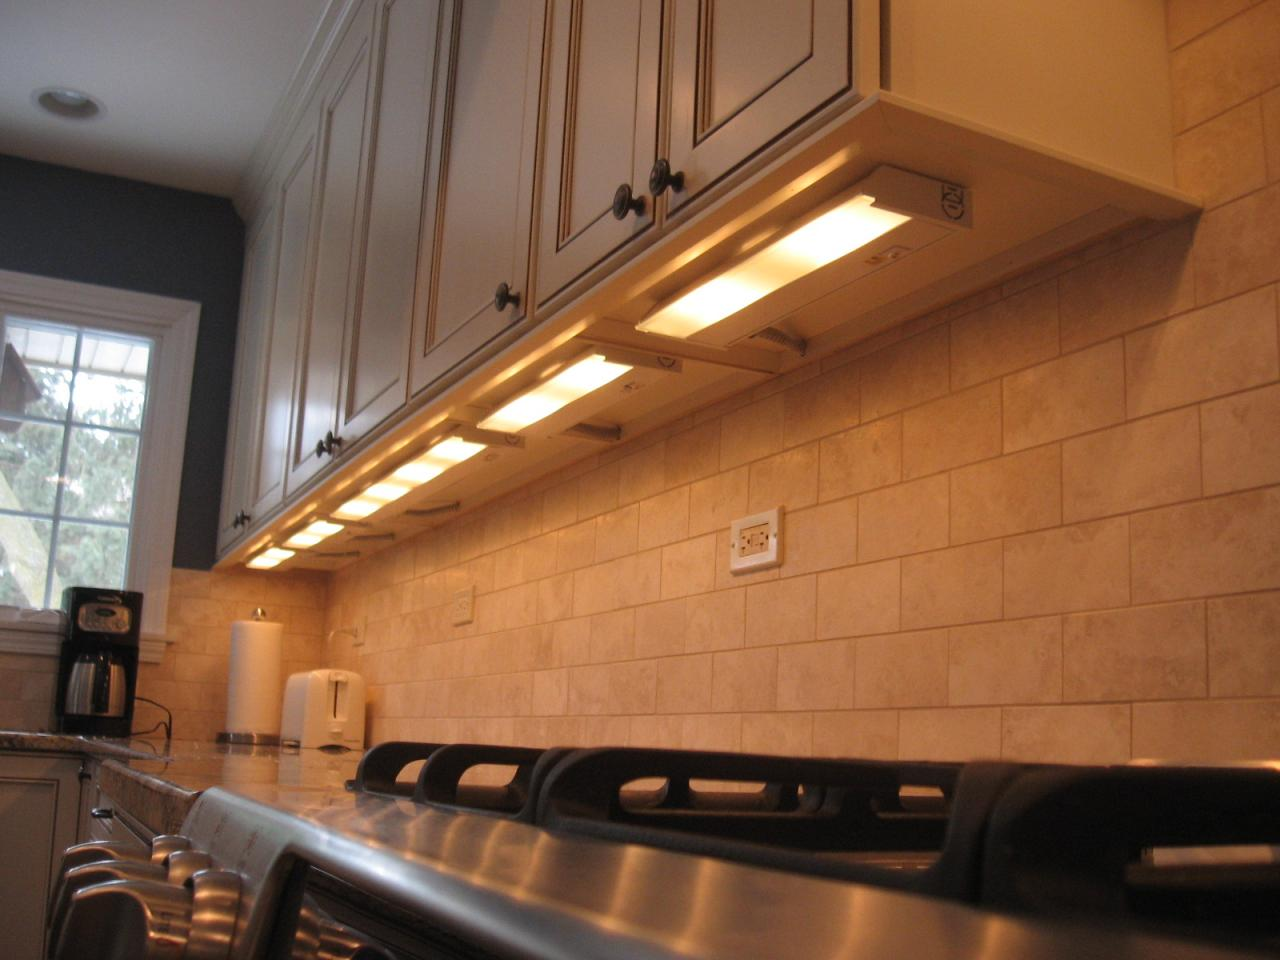 ordinary Kitchen Under Cabinet Lighting Options #2: kitchen-cool-kitchen-under-cabinet-lighting-idea-dazzling-